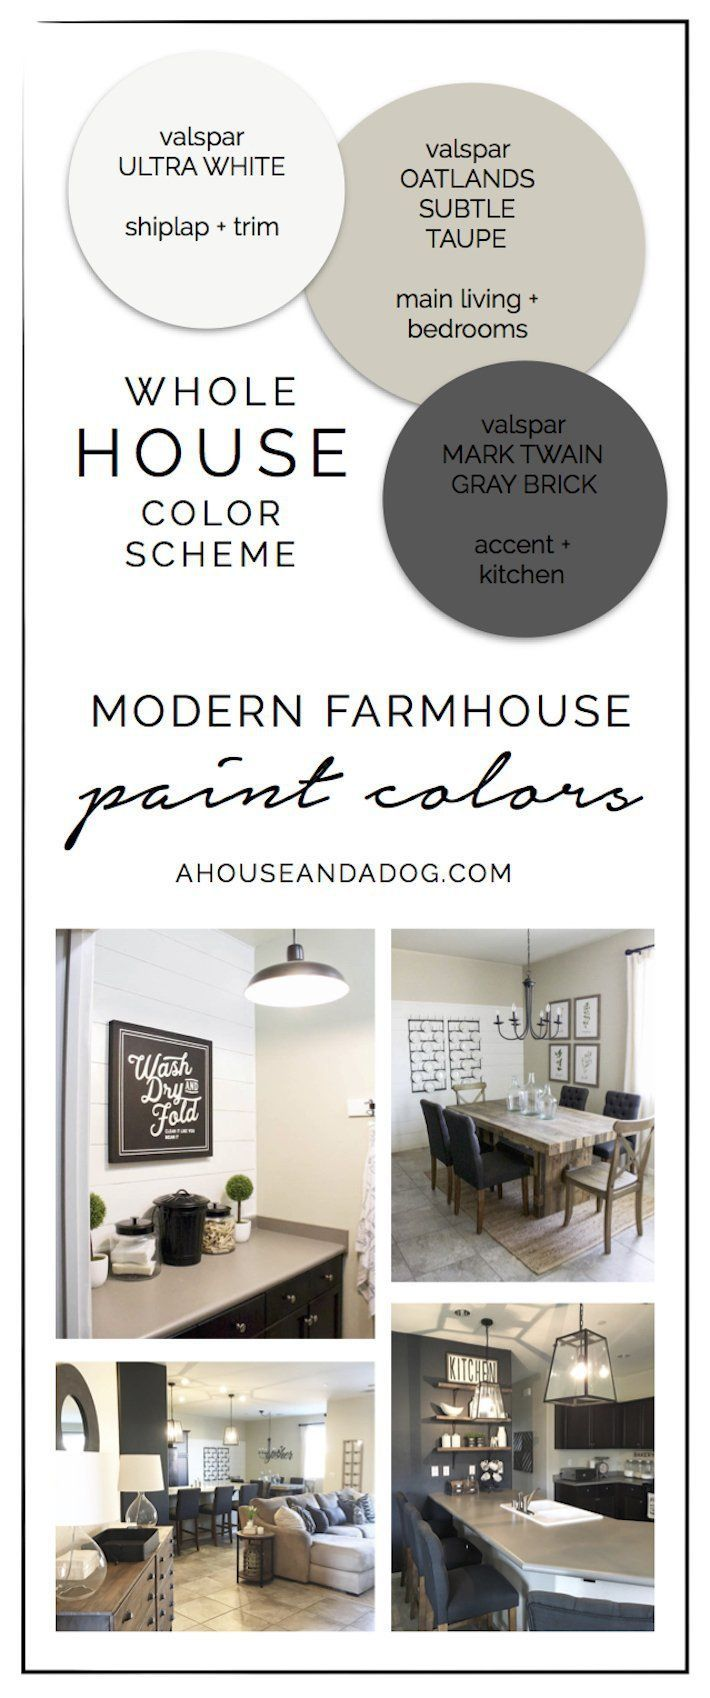 Whole House Color Scheme - Modern Farmhouse Paint Colors | ahouseandadog.com